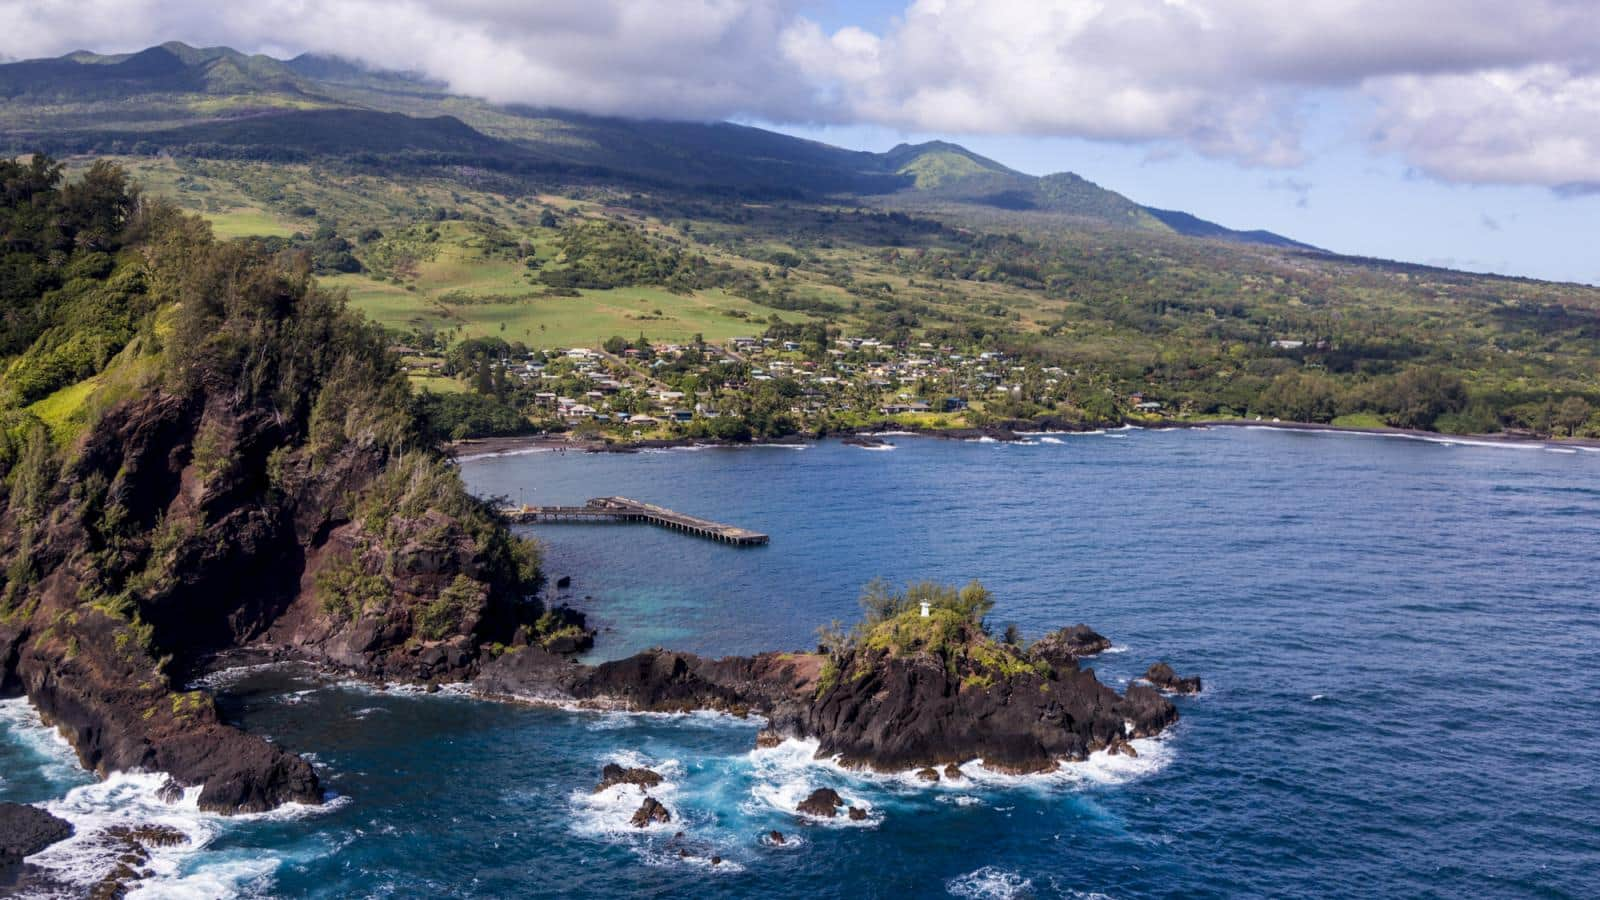 San Francisco to Maui Kahului Hawaii or Vice Versa $358 RT Nonstop Airfares on United BE or Alaska Airlines SF (Travel Sept-Feb 2020)